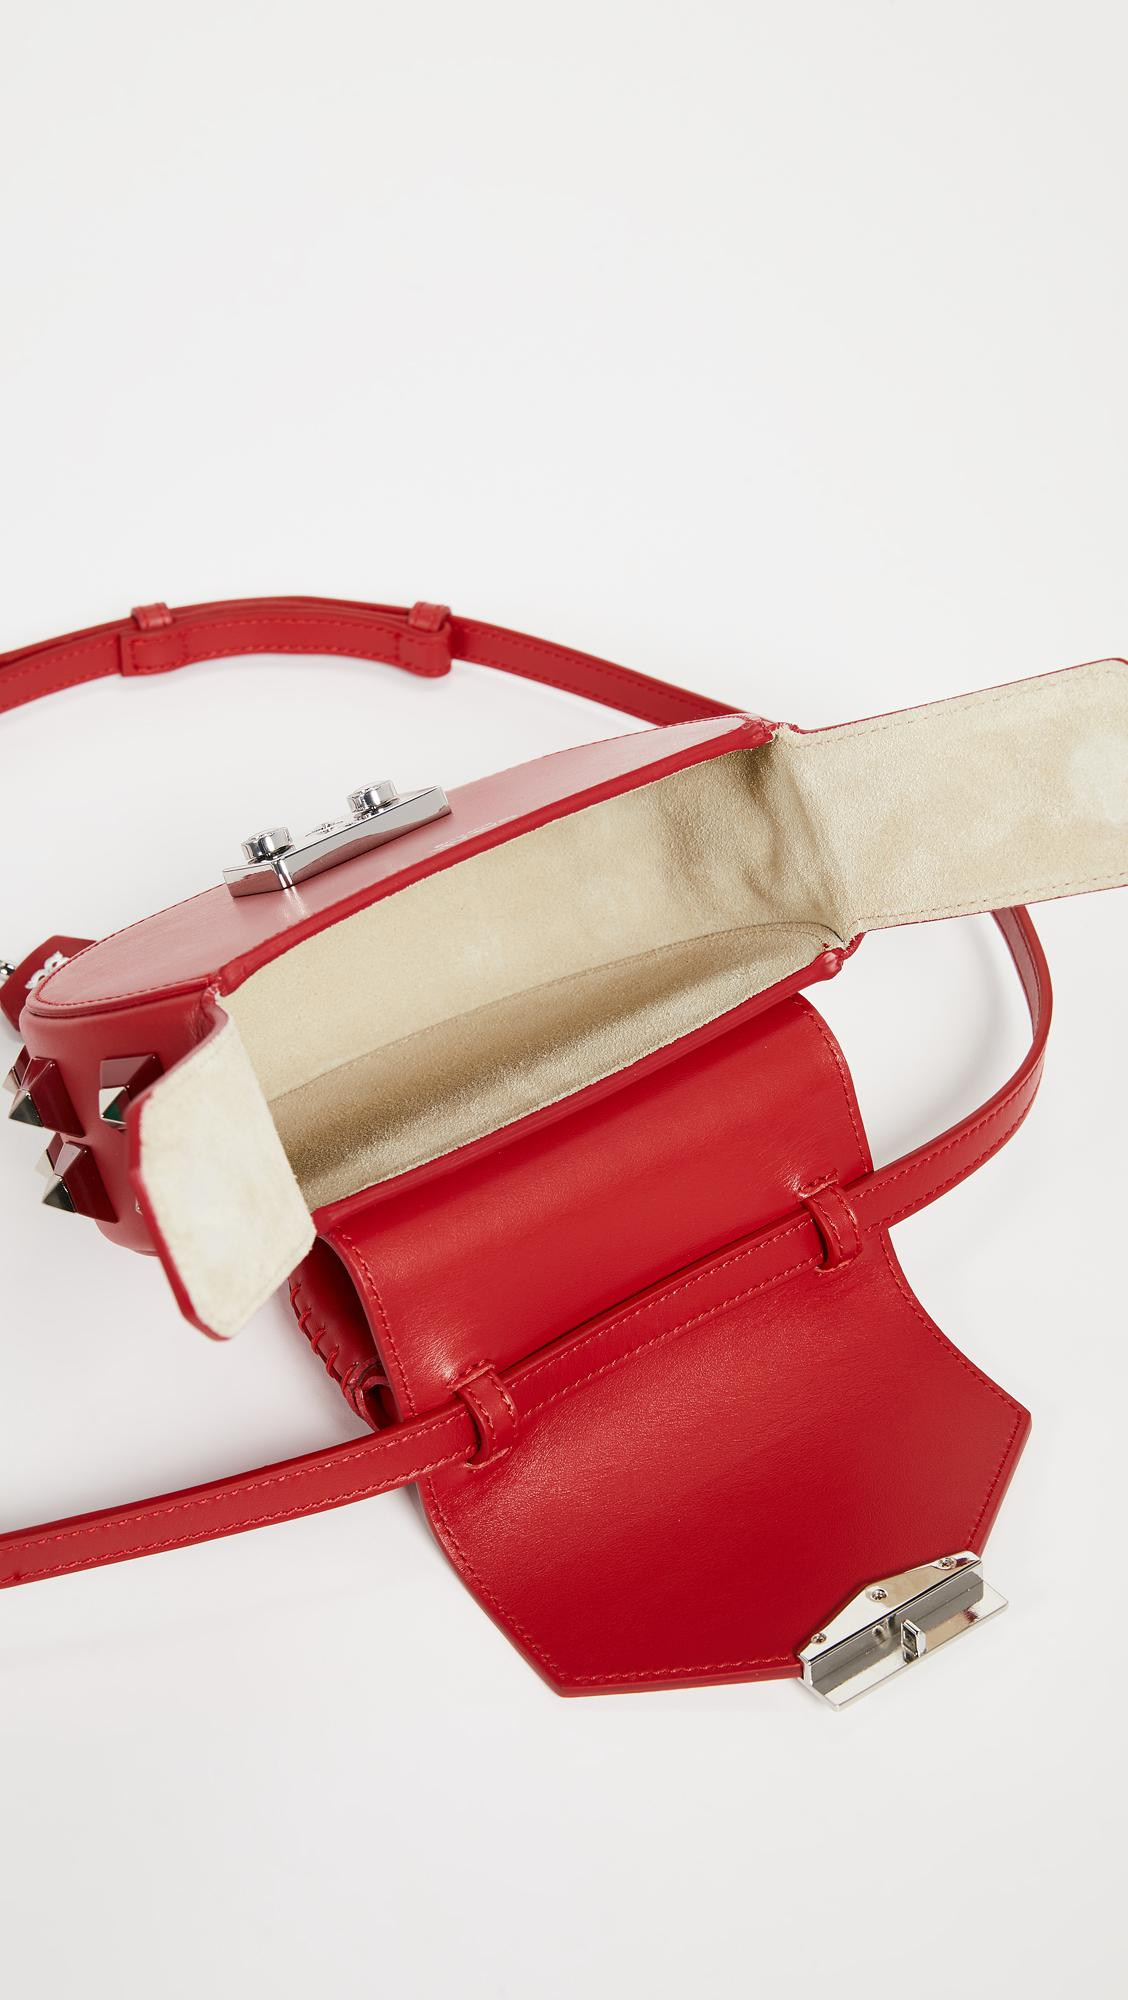 Salar Leather Mimi Cross Body Bag in Red